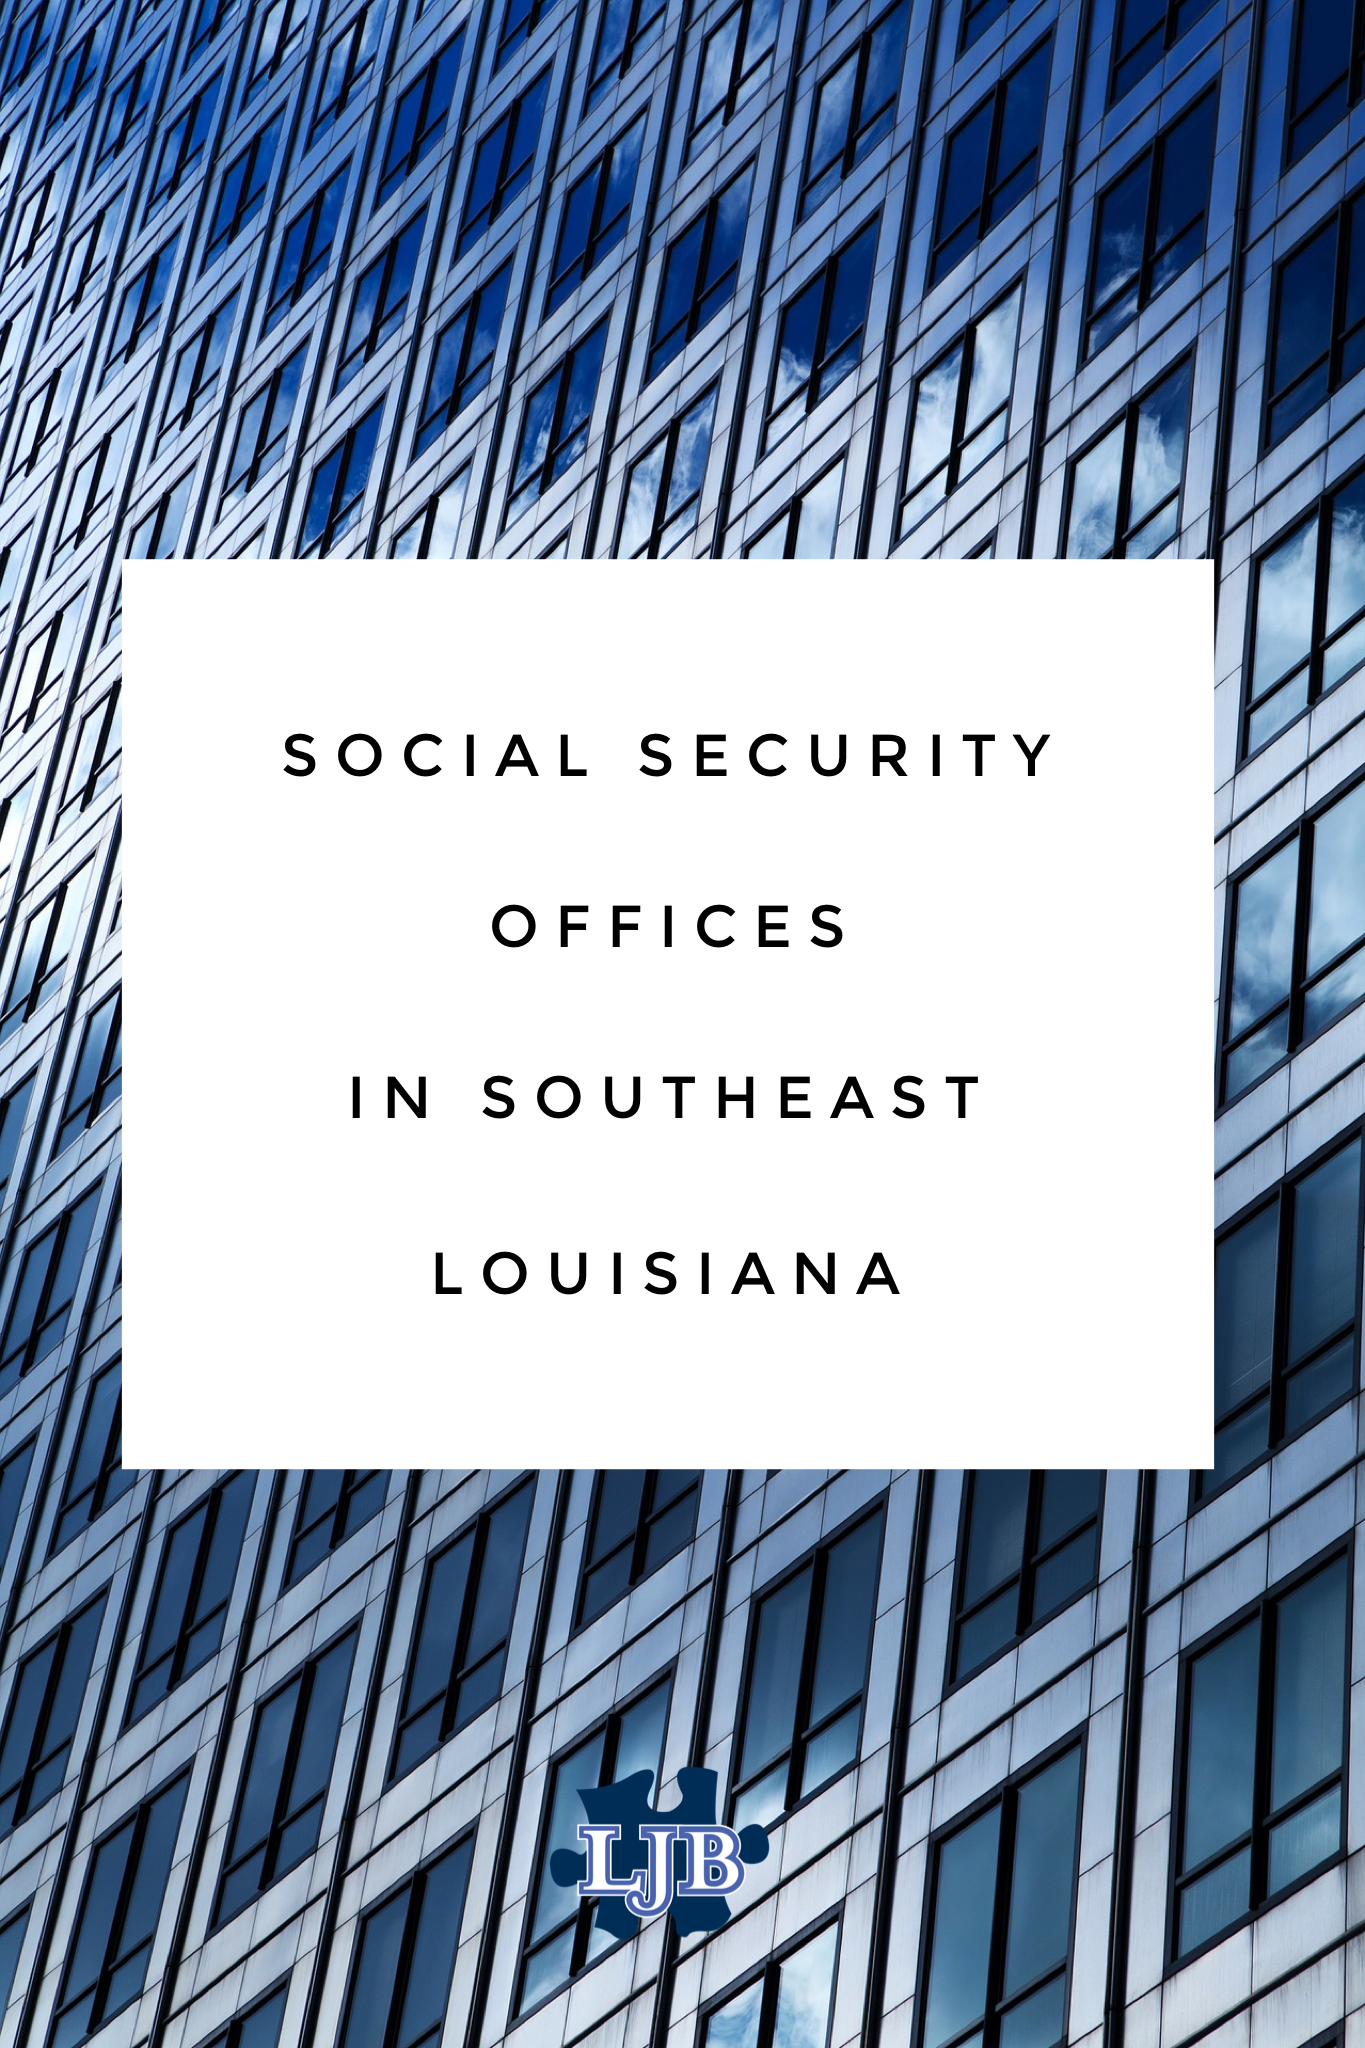 Social Security offices in Southeast Louisiana